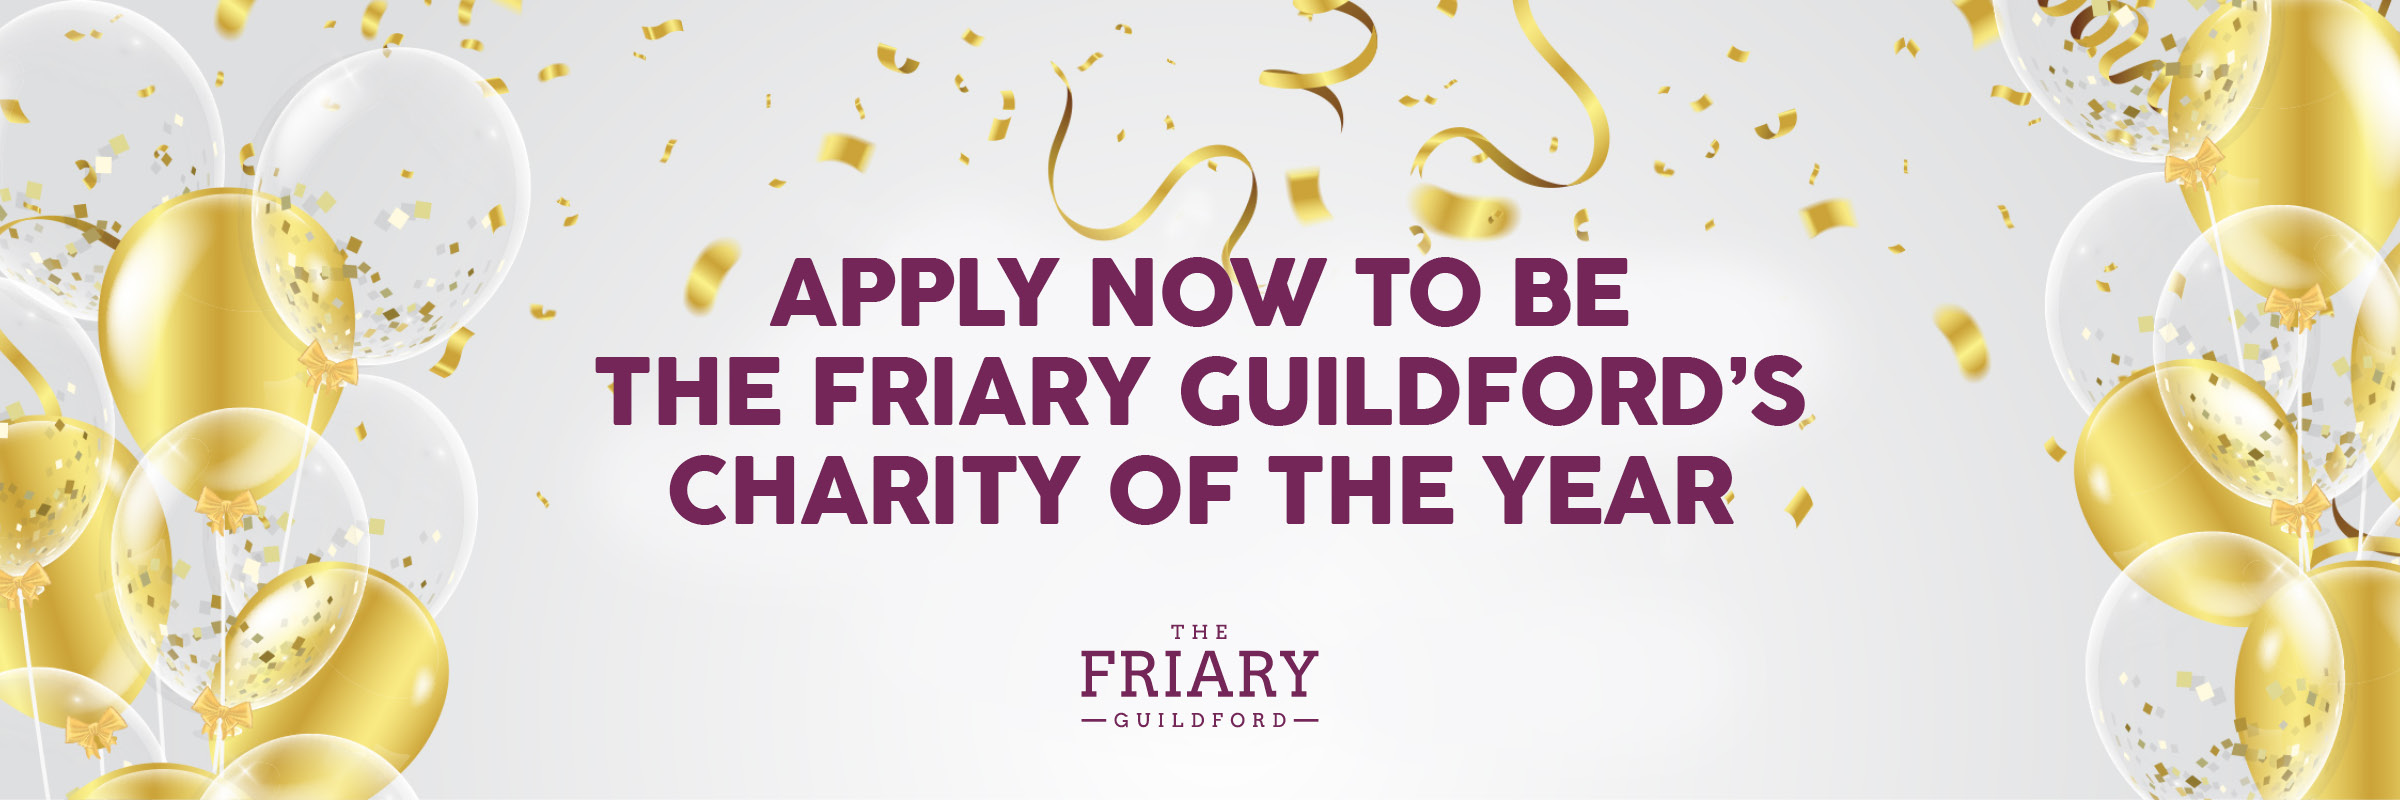 The Friary Guildford is searching for its new Partner Charity